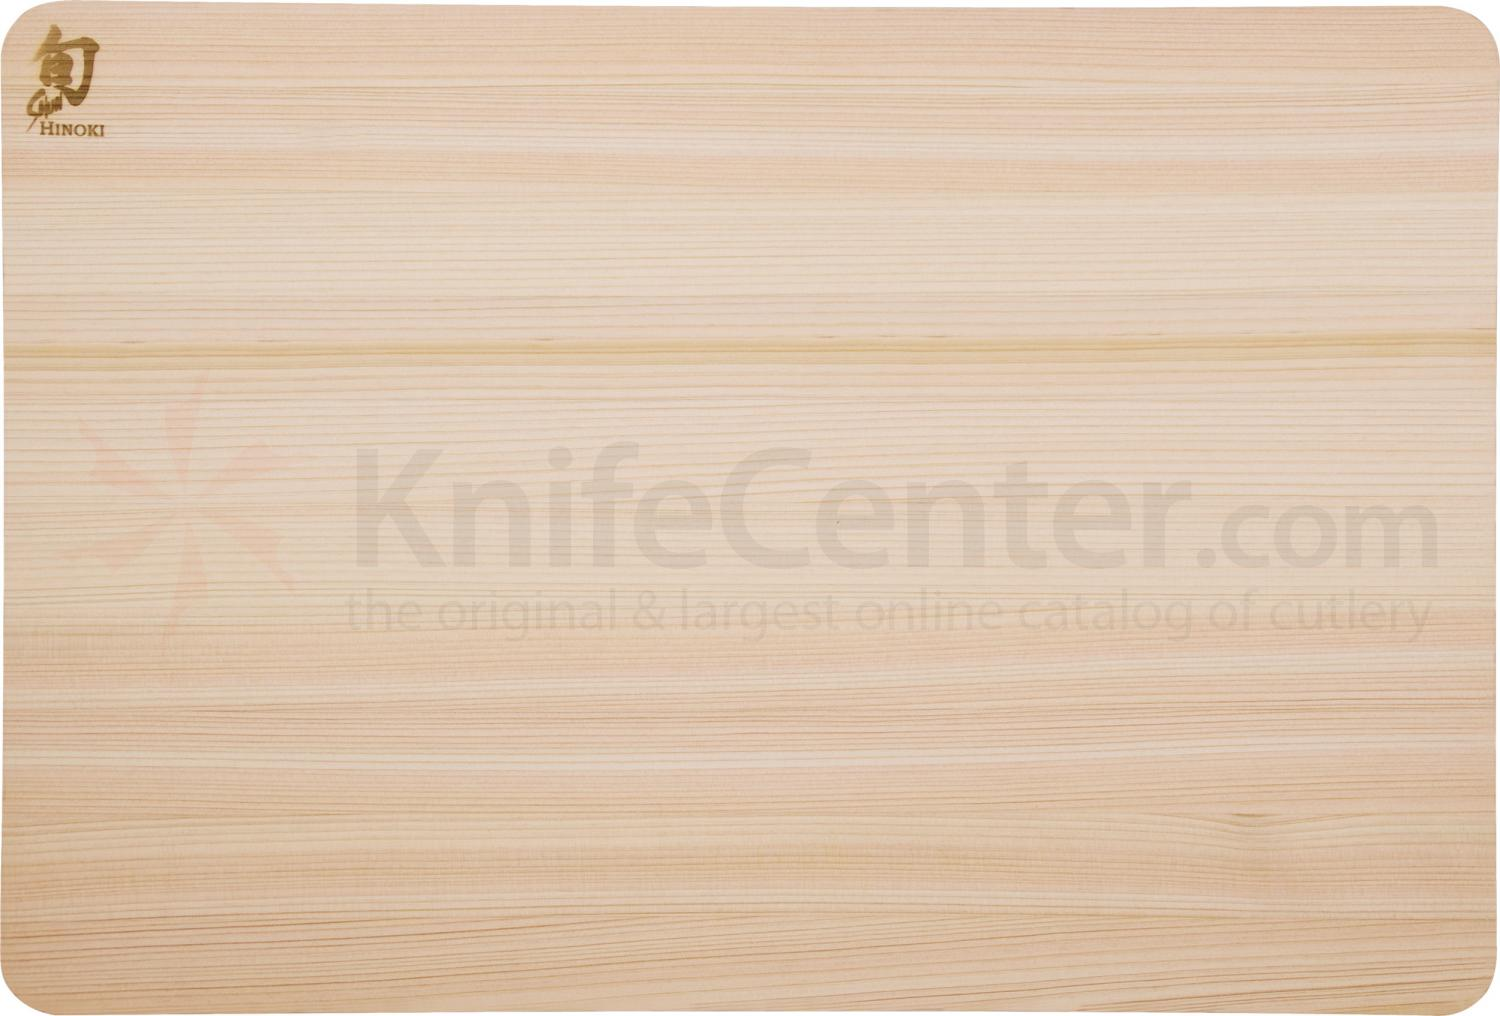 Shun DM0816 Hinoki Cutting Board, Medium, 15.75 inch x 10.75 inch x 0.5 inch